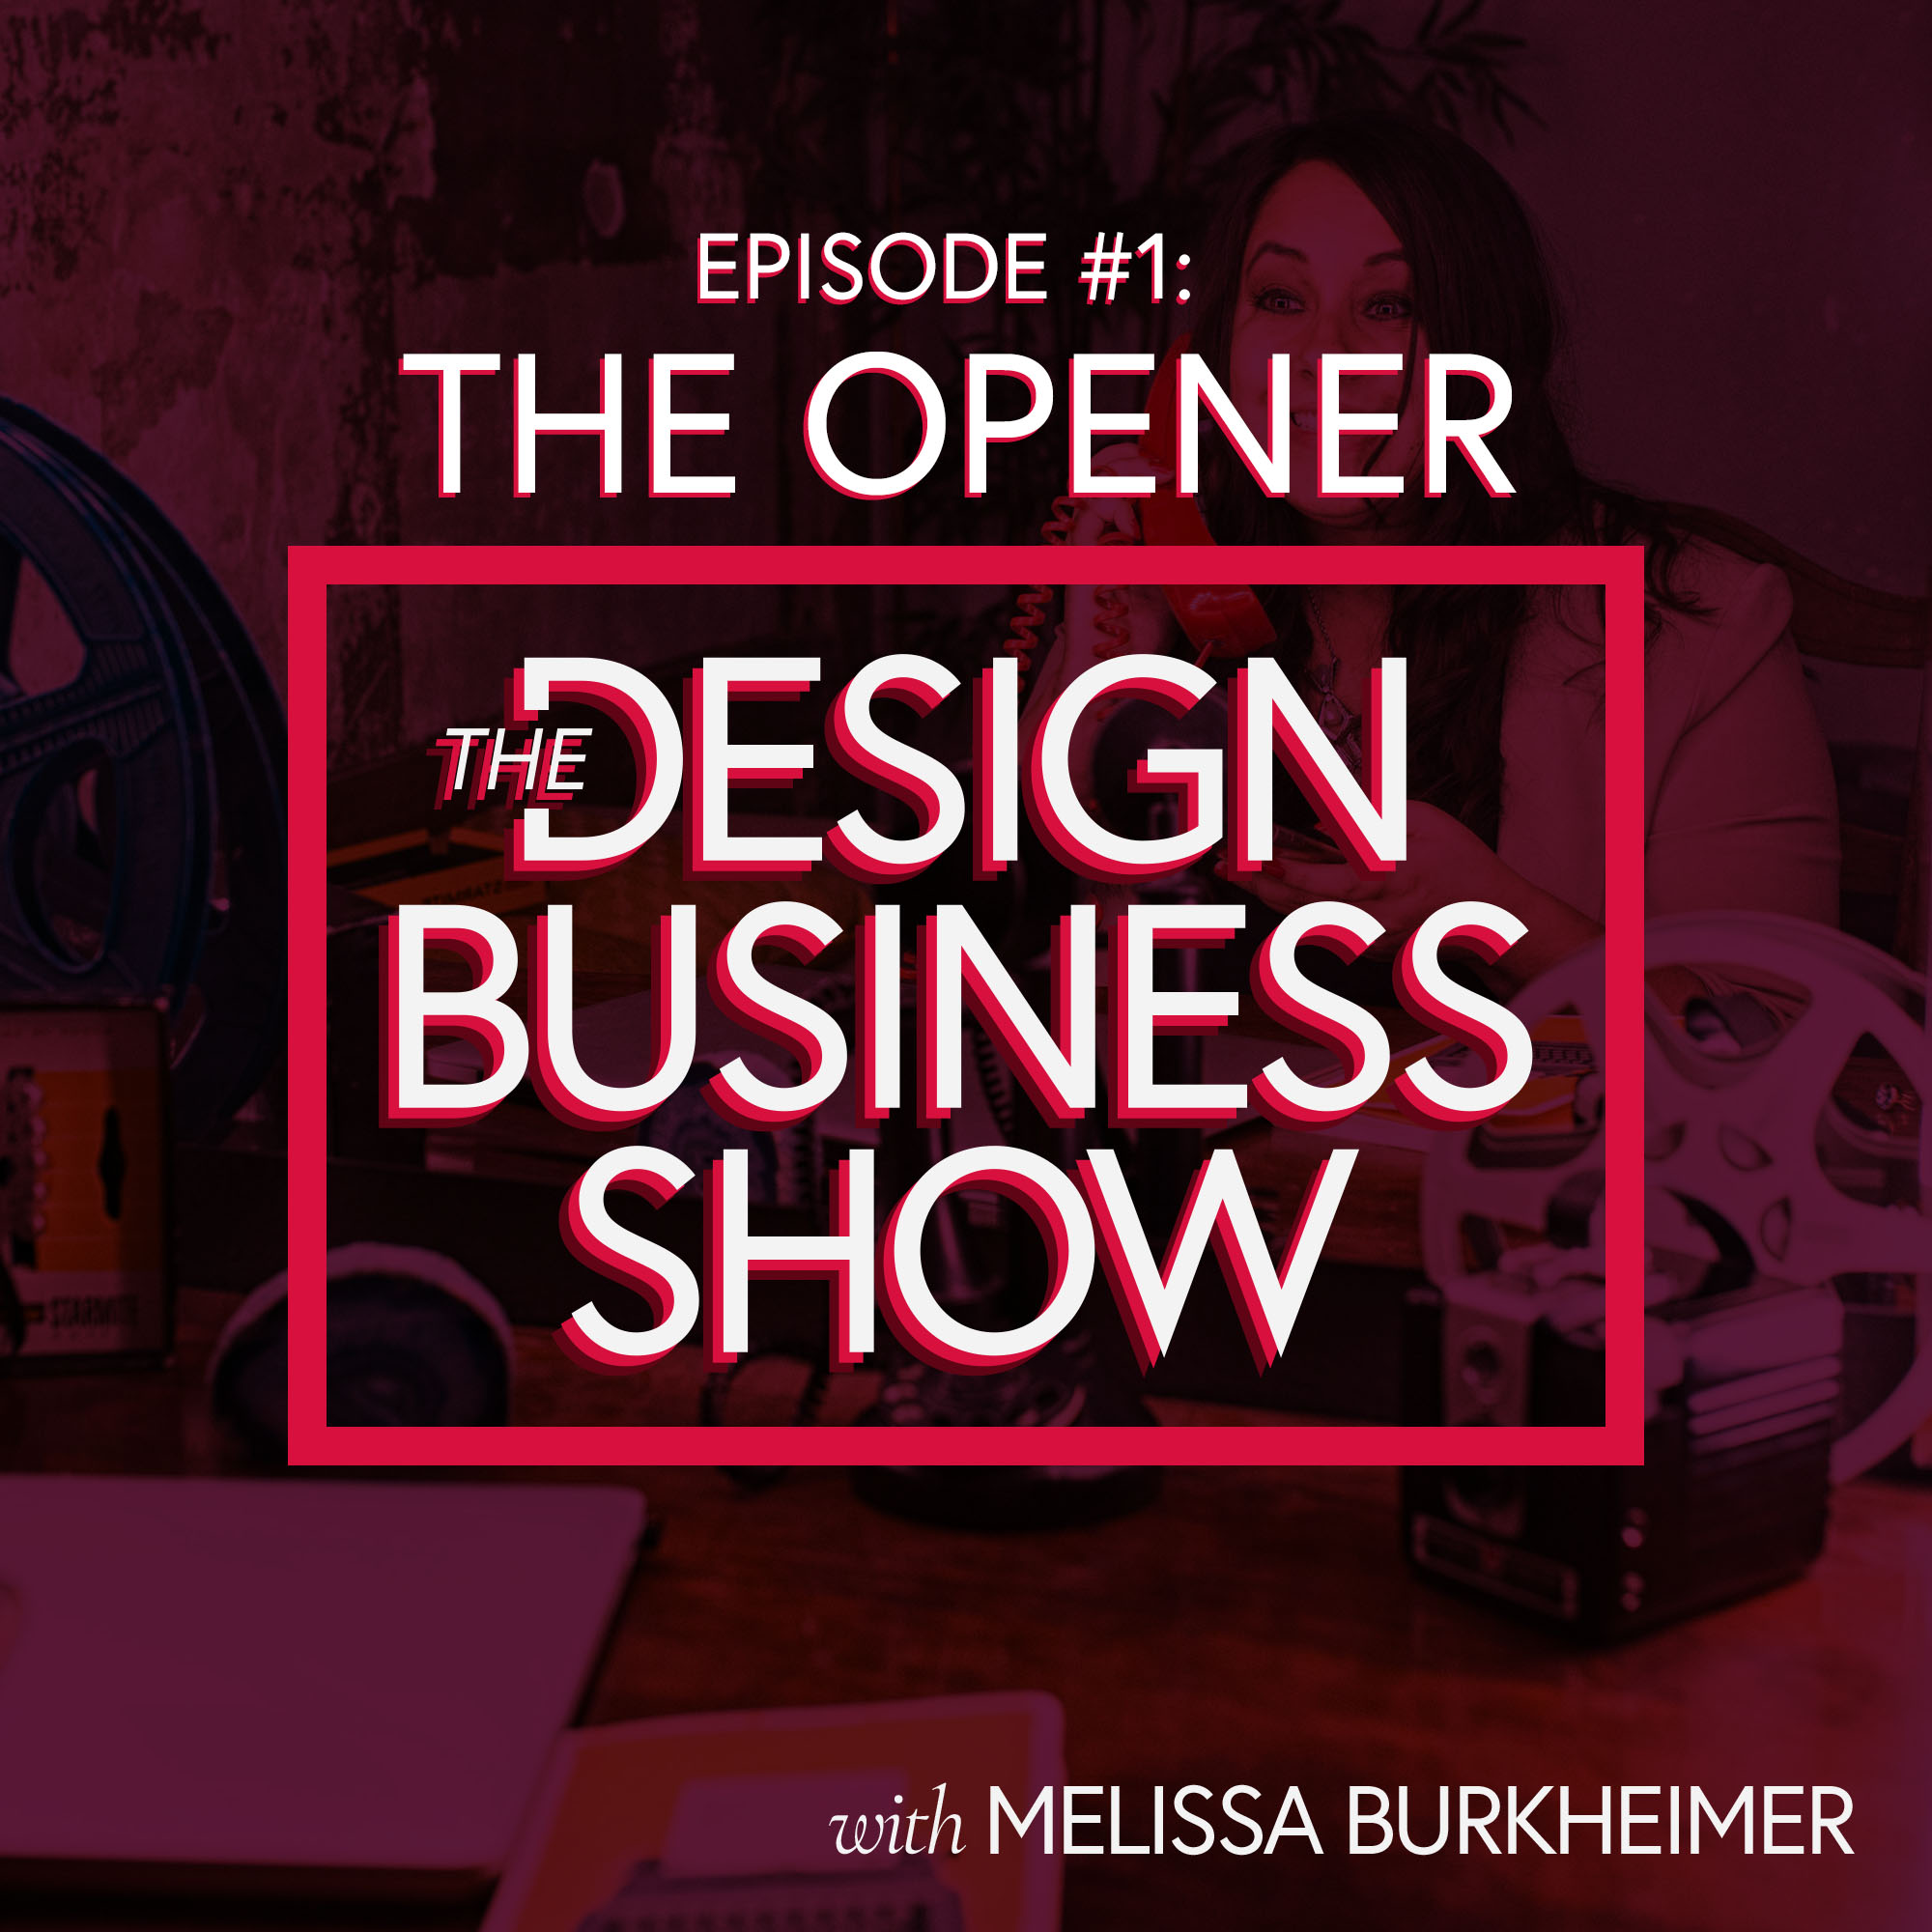 What is the Design Business Show and who is this Melissa chick?